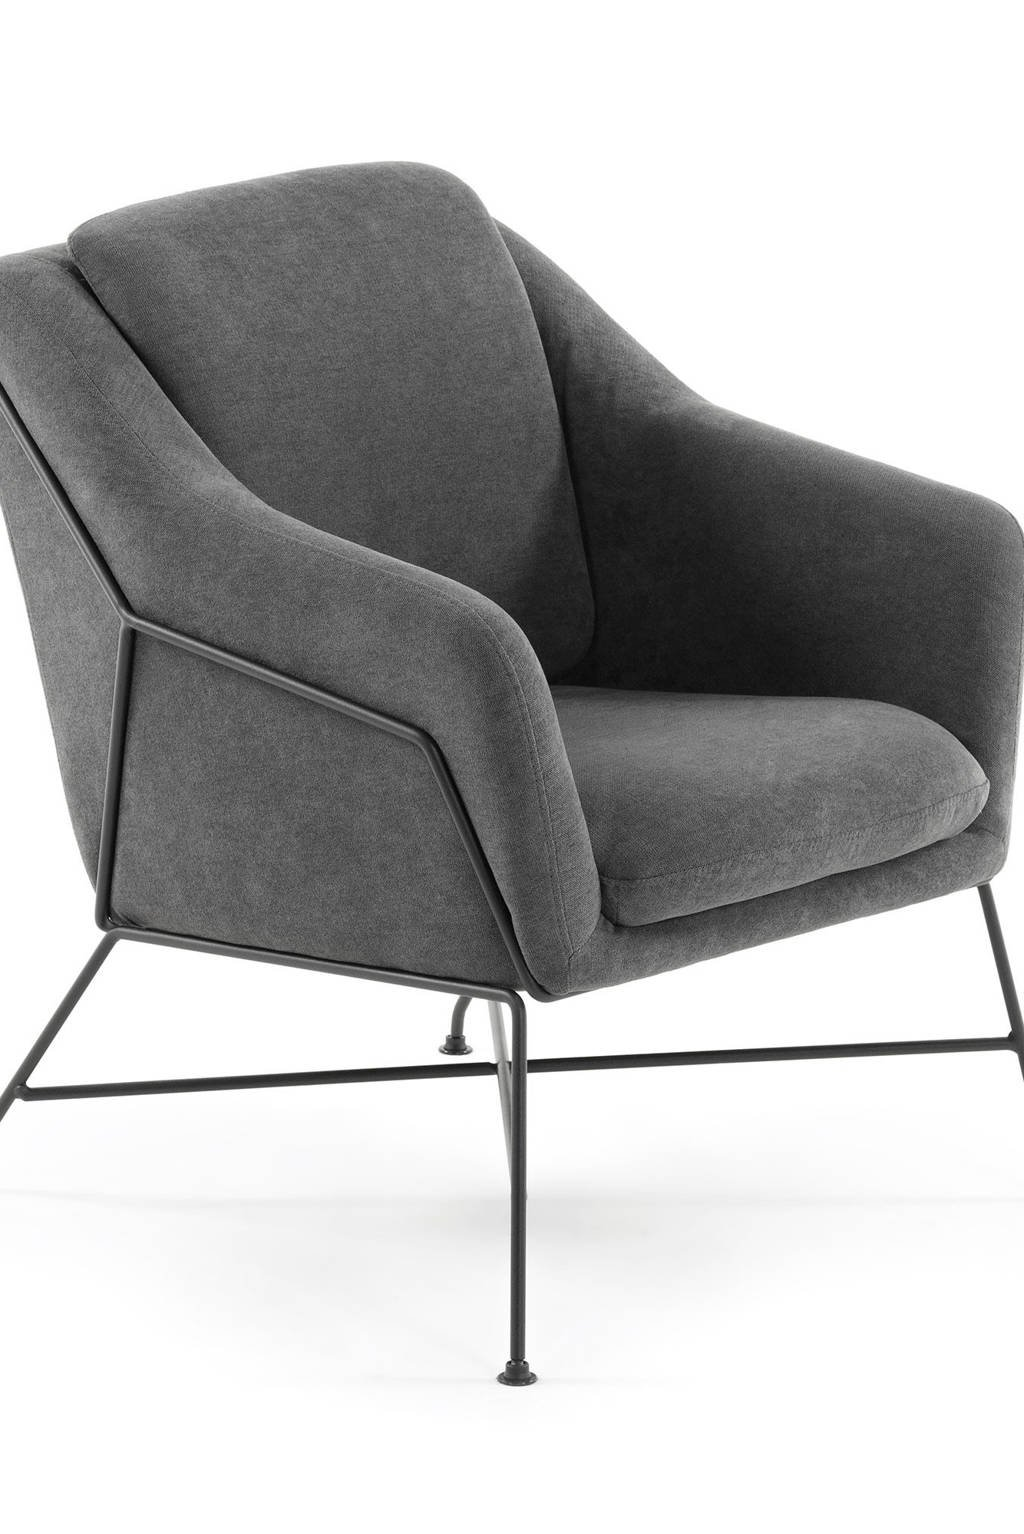 Kave Home fauteuil Brida, Donkergrijs